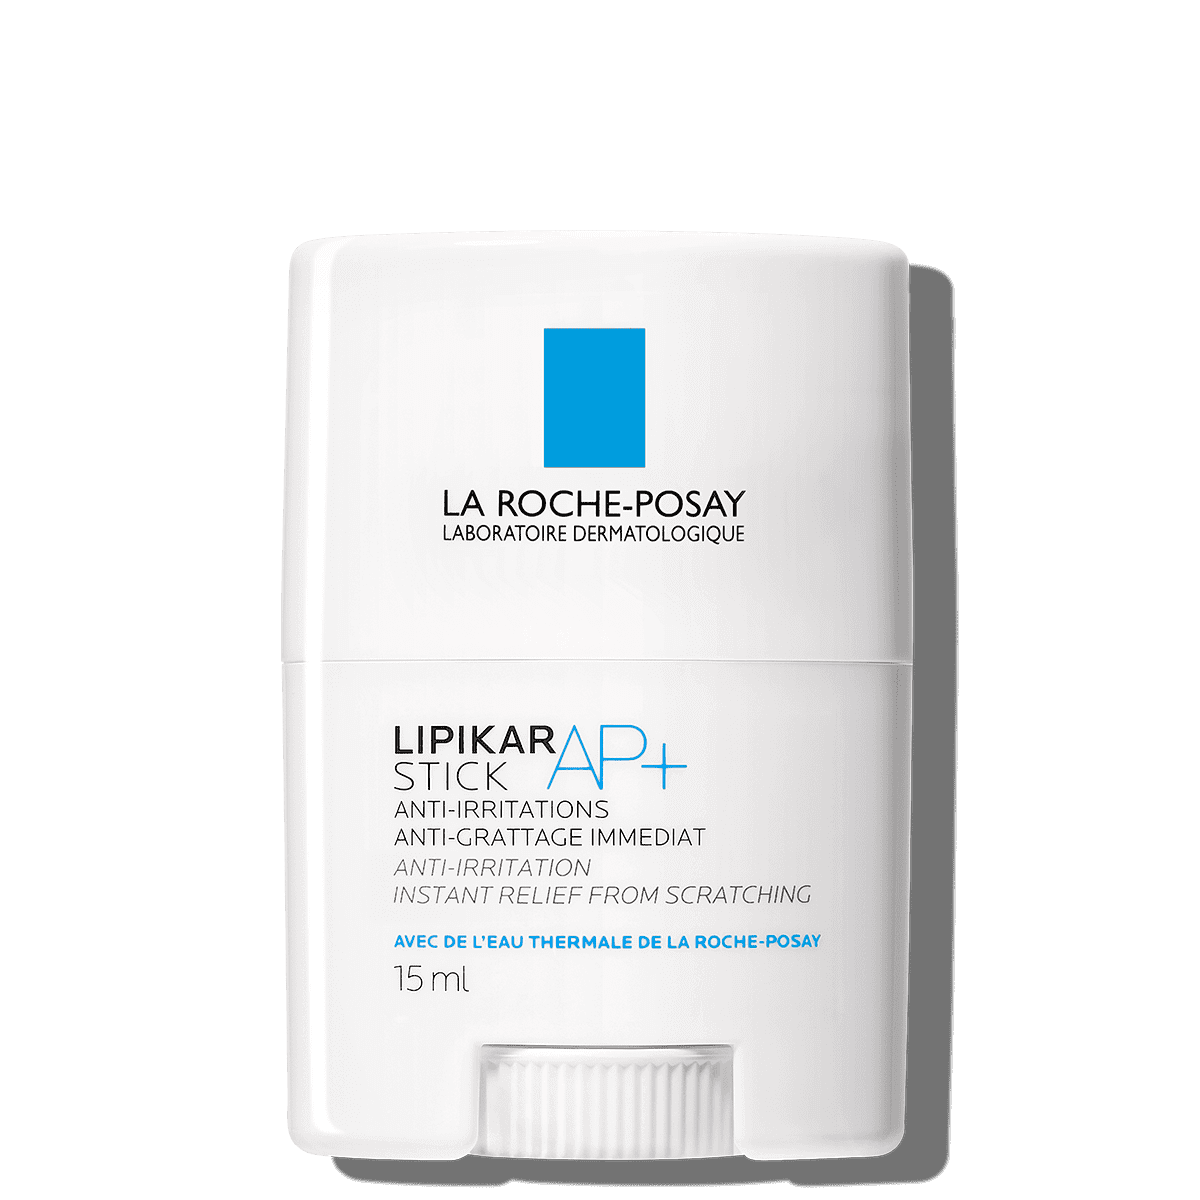 La Roche Posay Body Care Lipikar Stick AP 15ml Irritation Scratching E